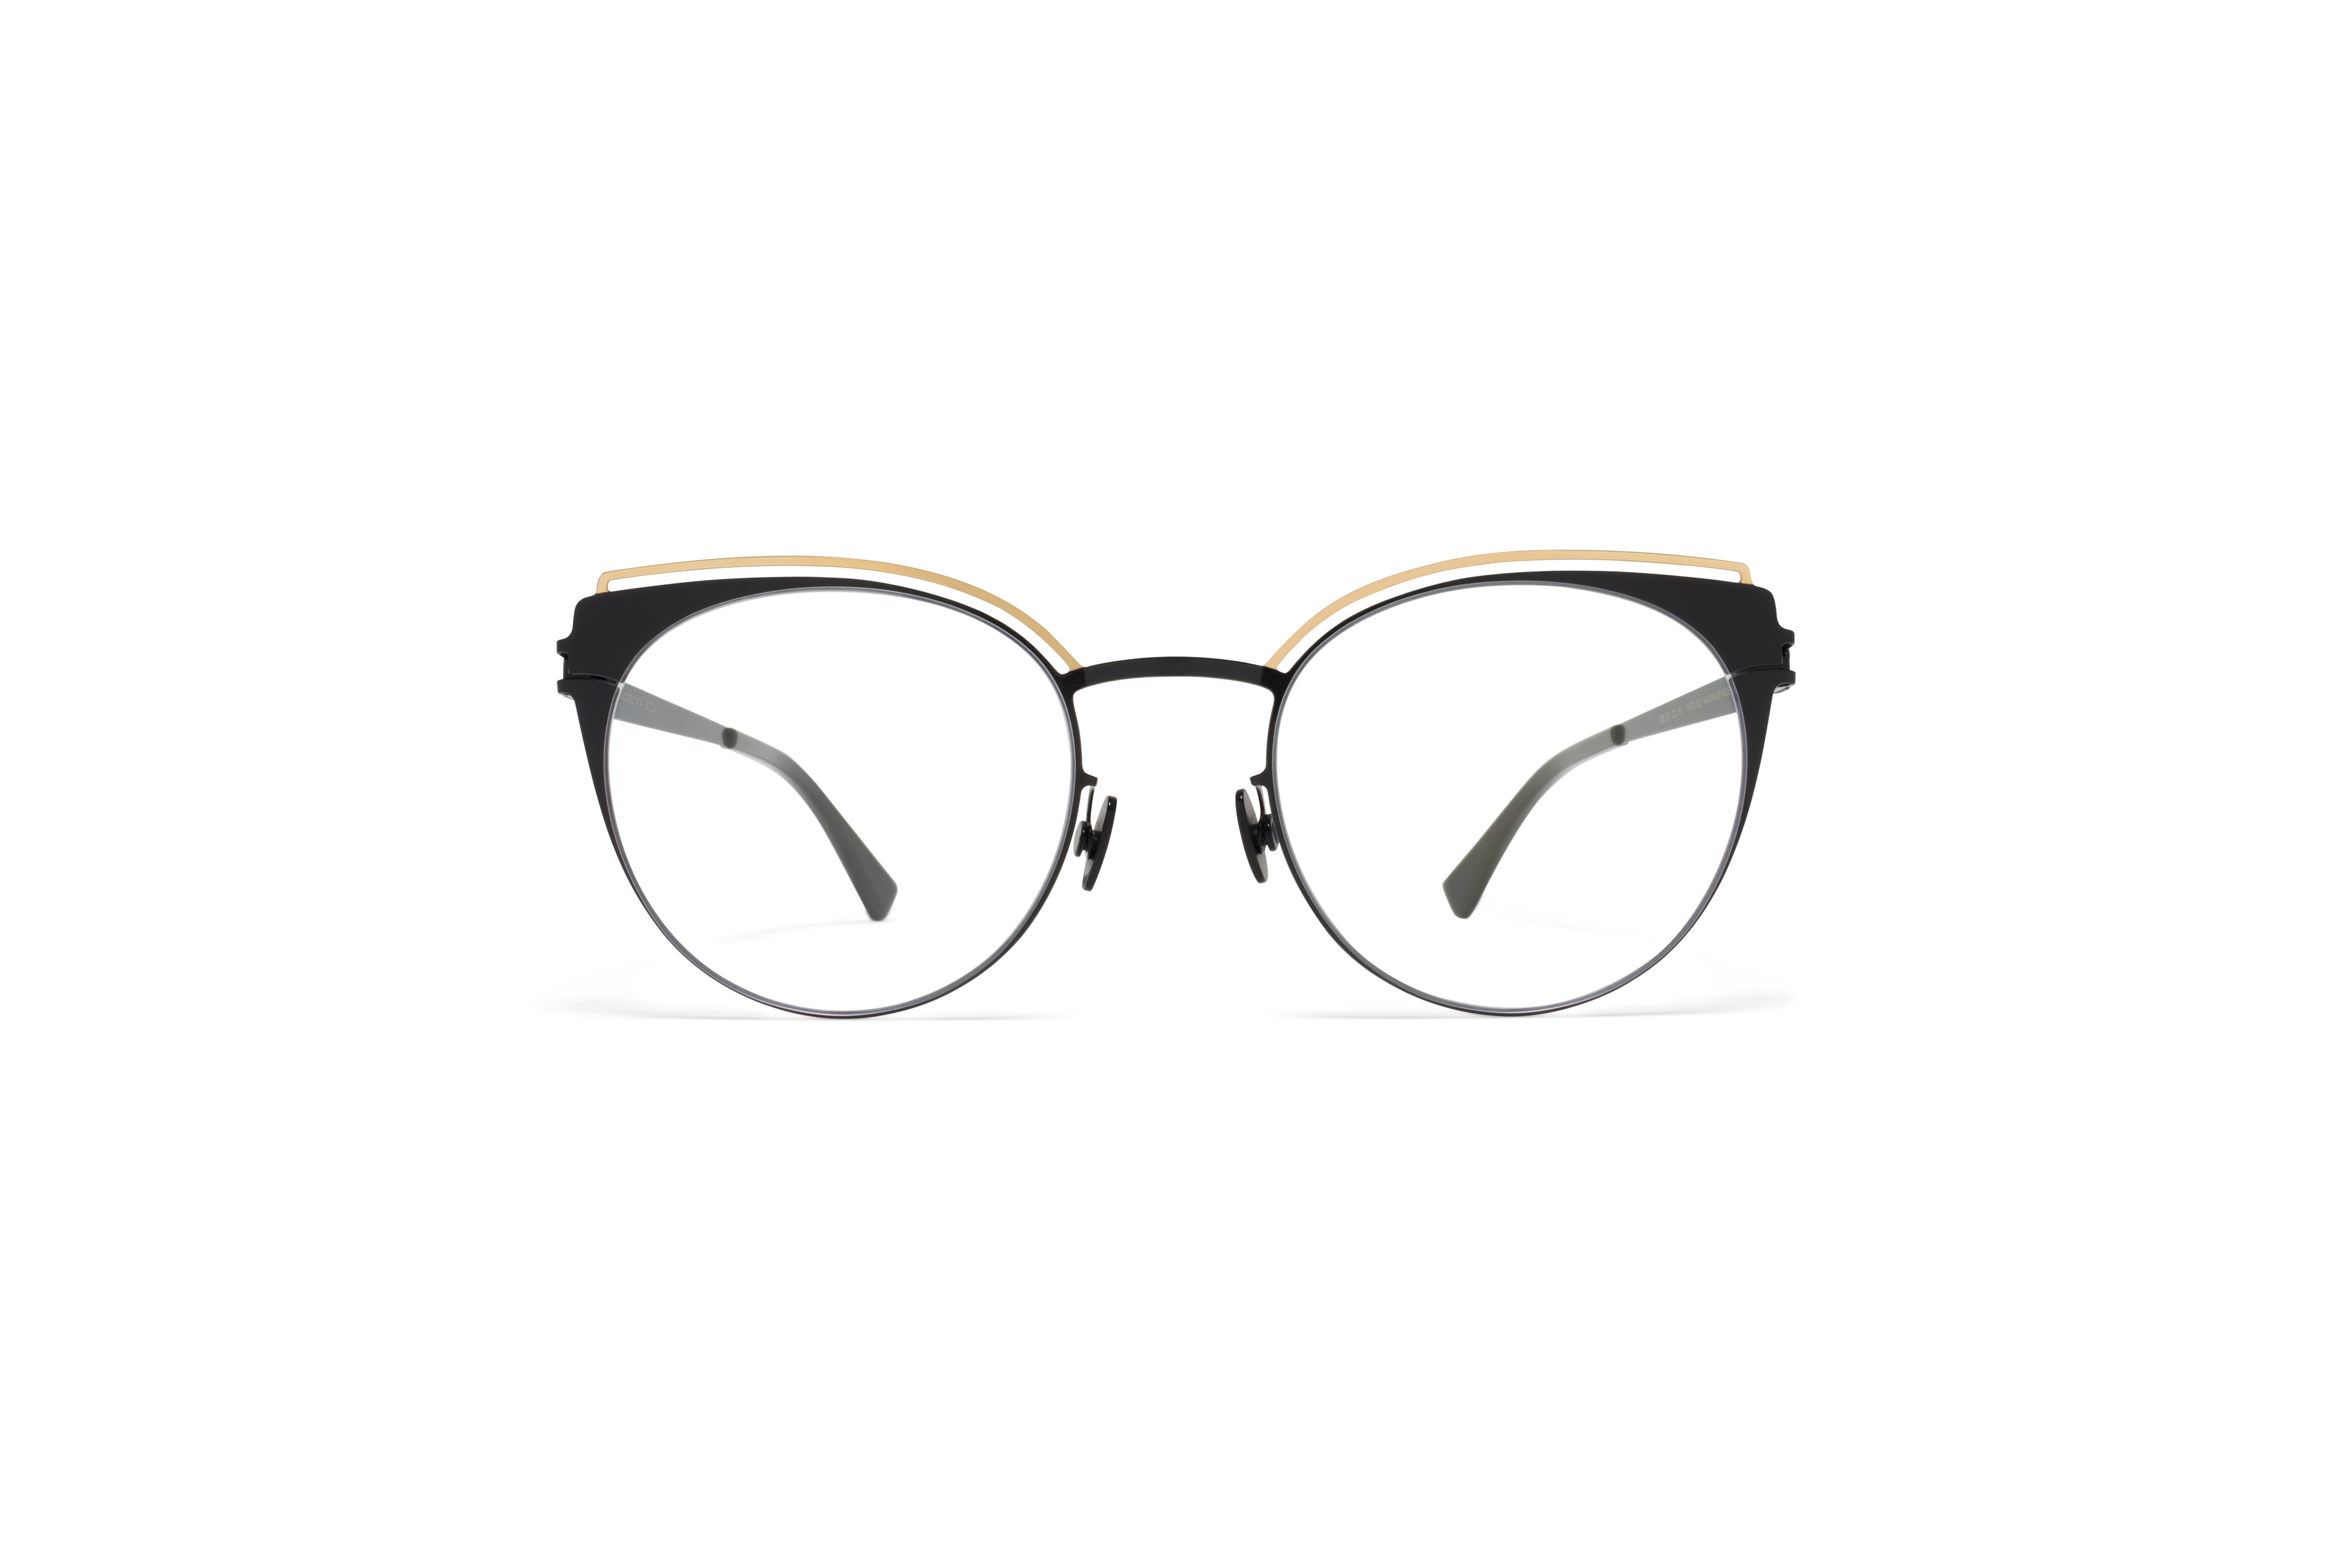 MYKITA Decades Rx Tata Gold Jet Black Clear